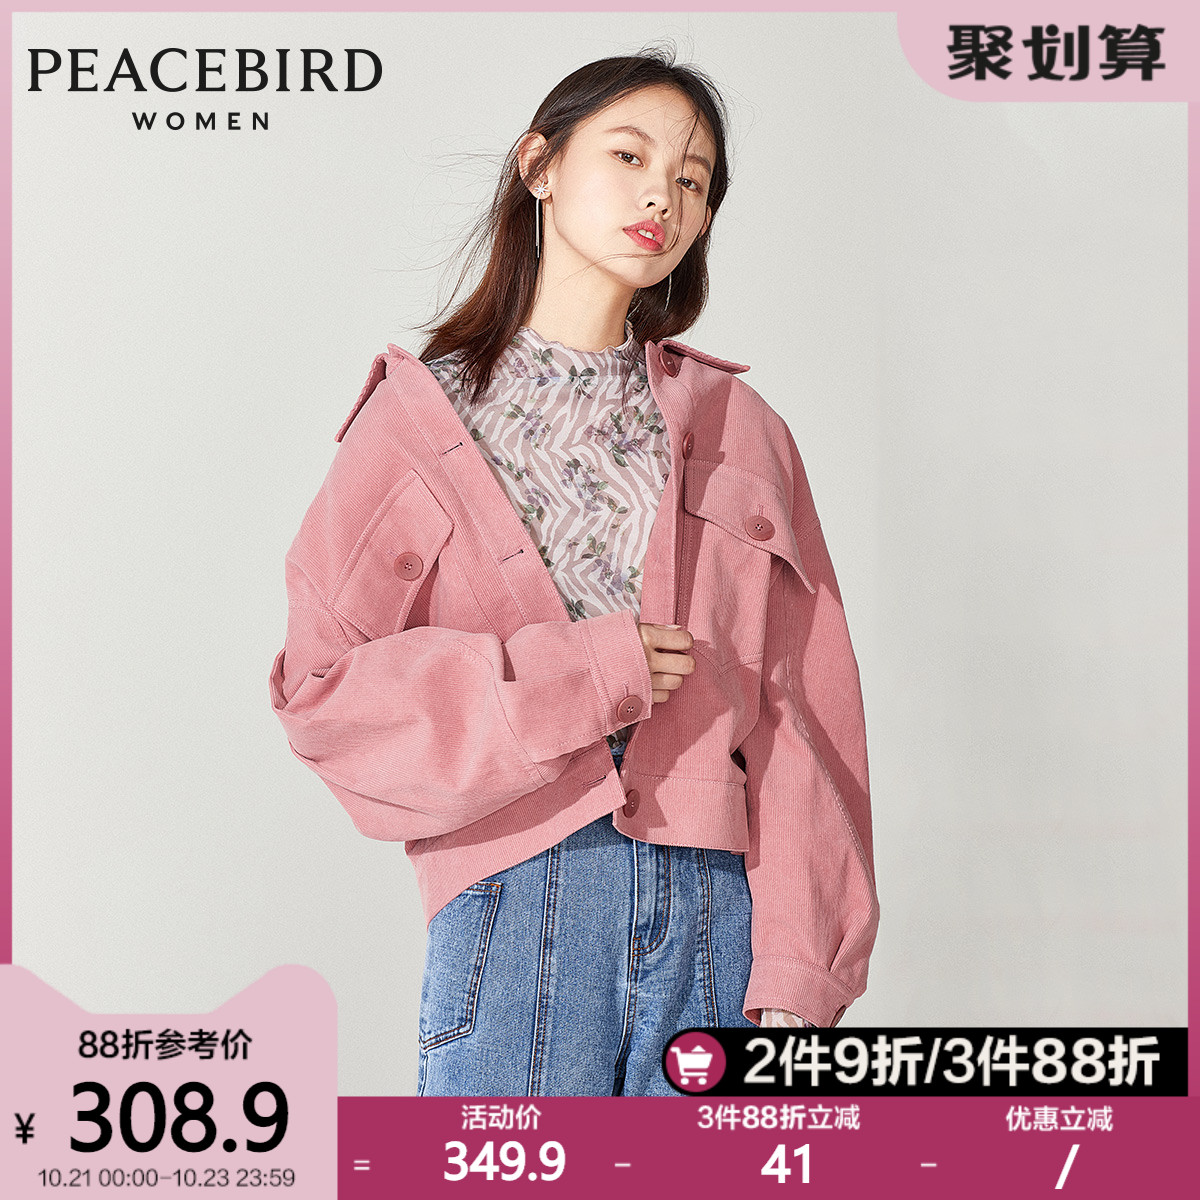 Peacebird tooling jacket women short style 2020 spring and autumn new corduroy loose big pocket fashion jacket women